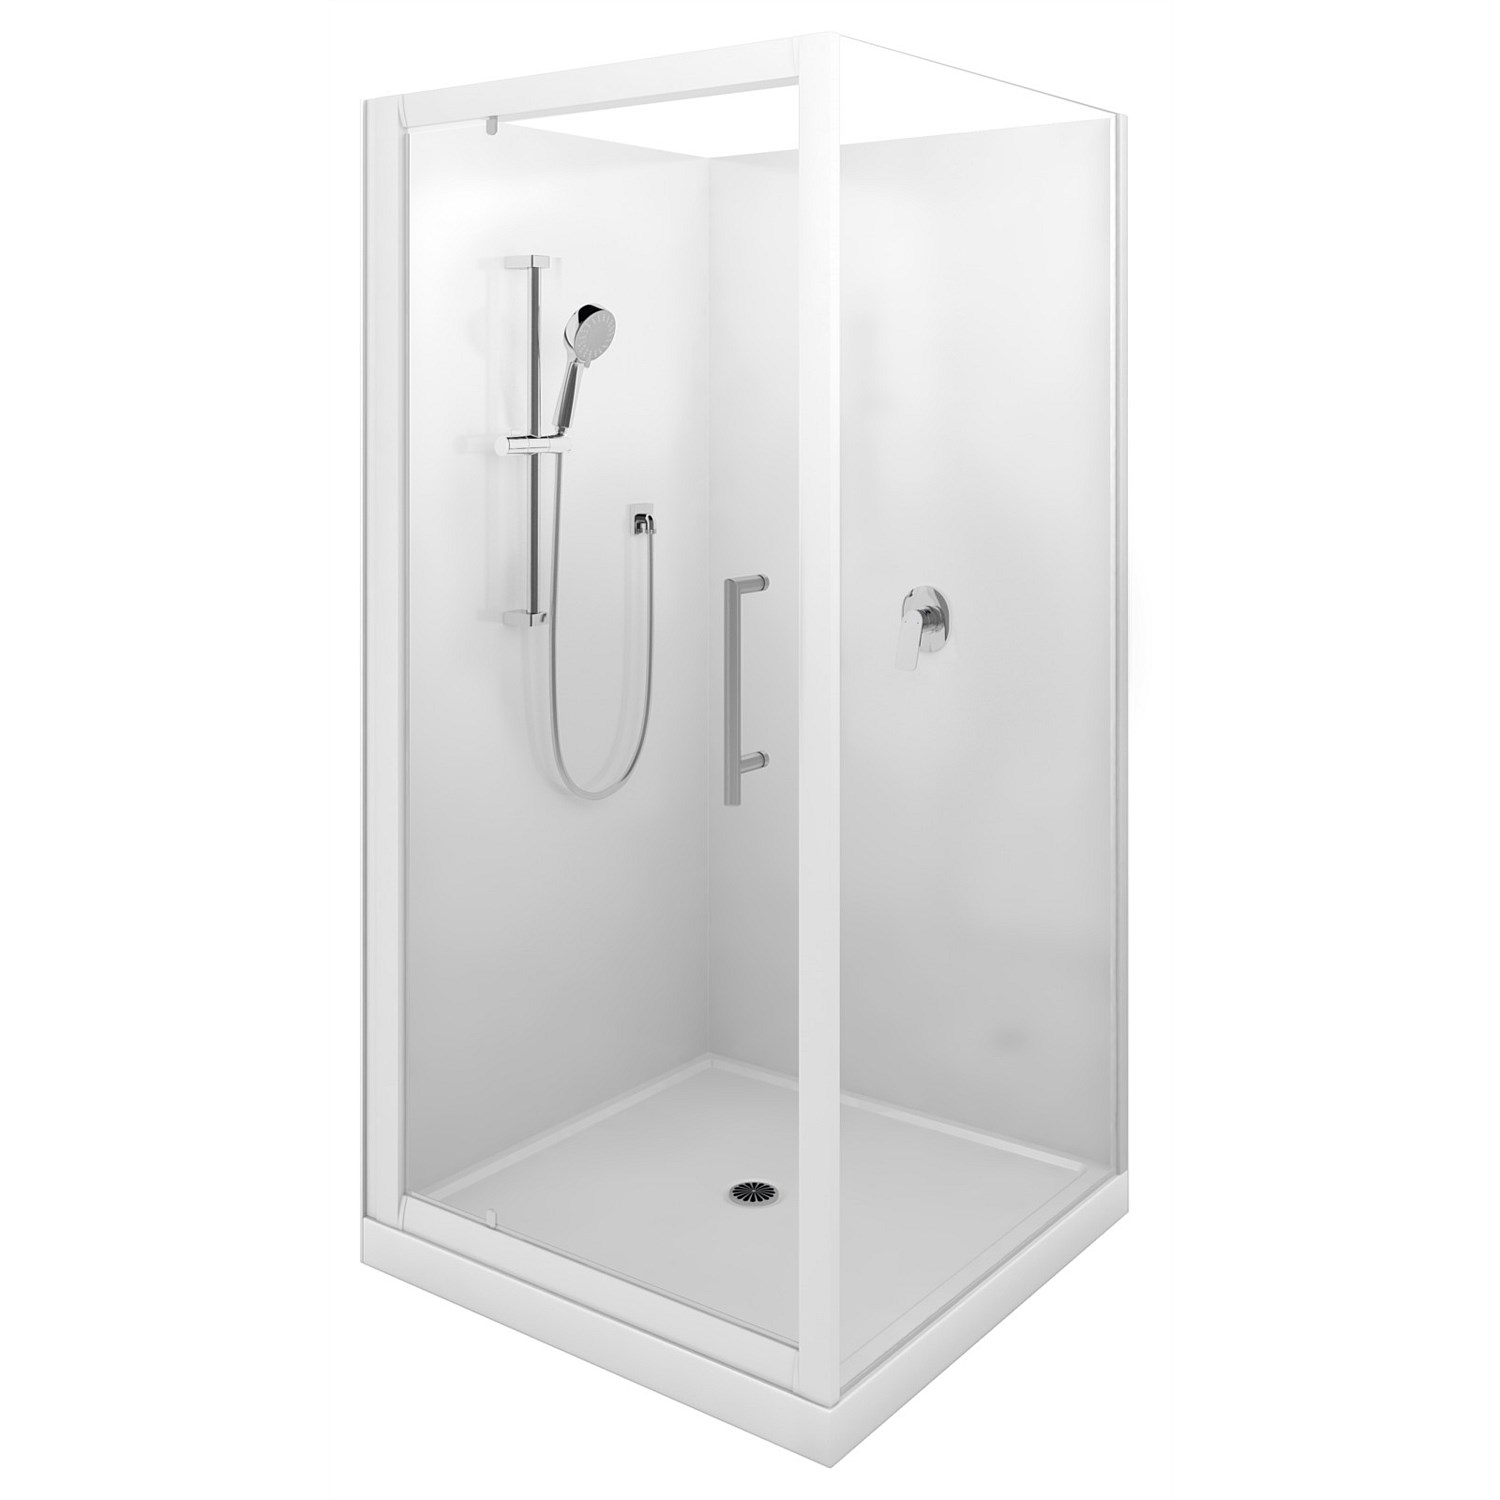 Showers | Plumbing World - LeVivi Cabris 900mm Square Shower Enclosure